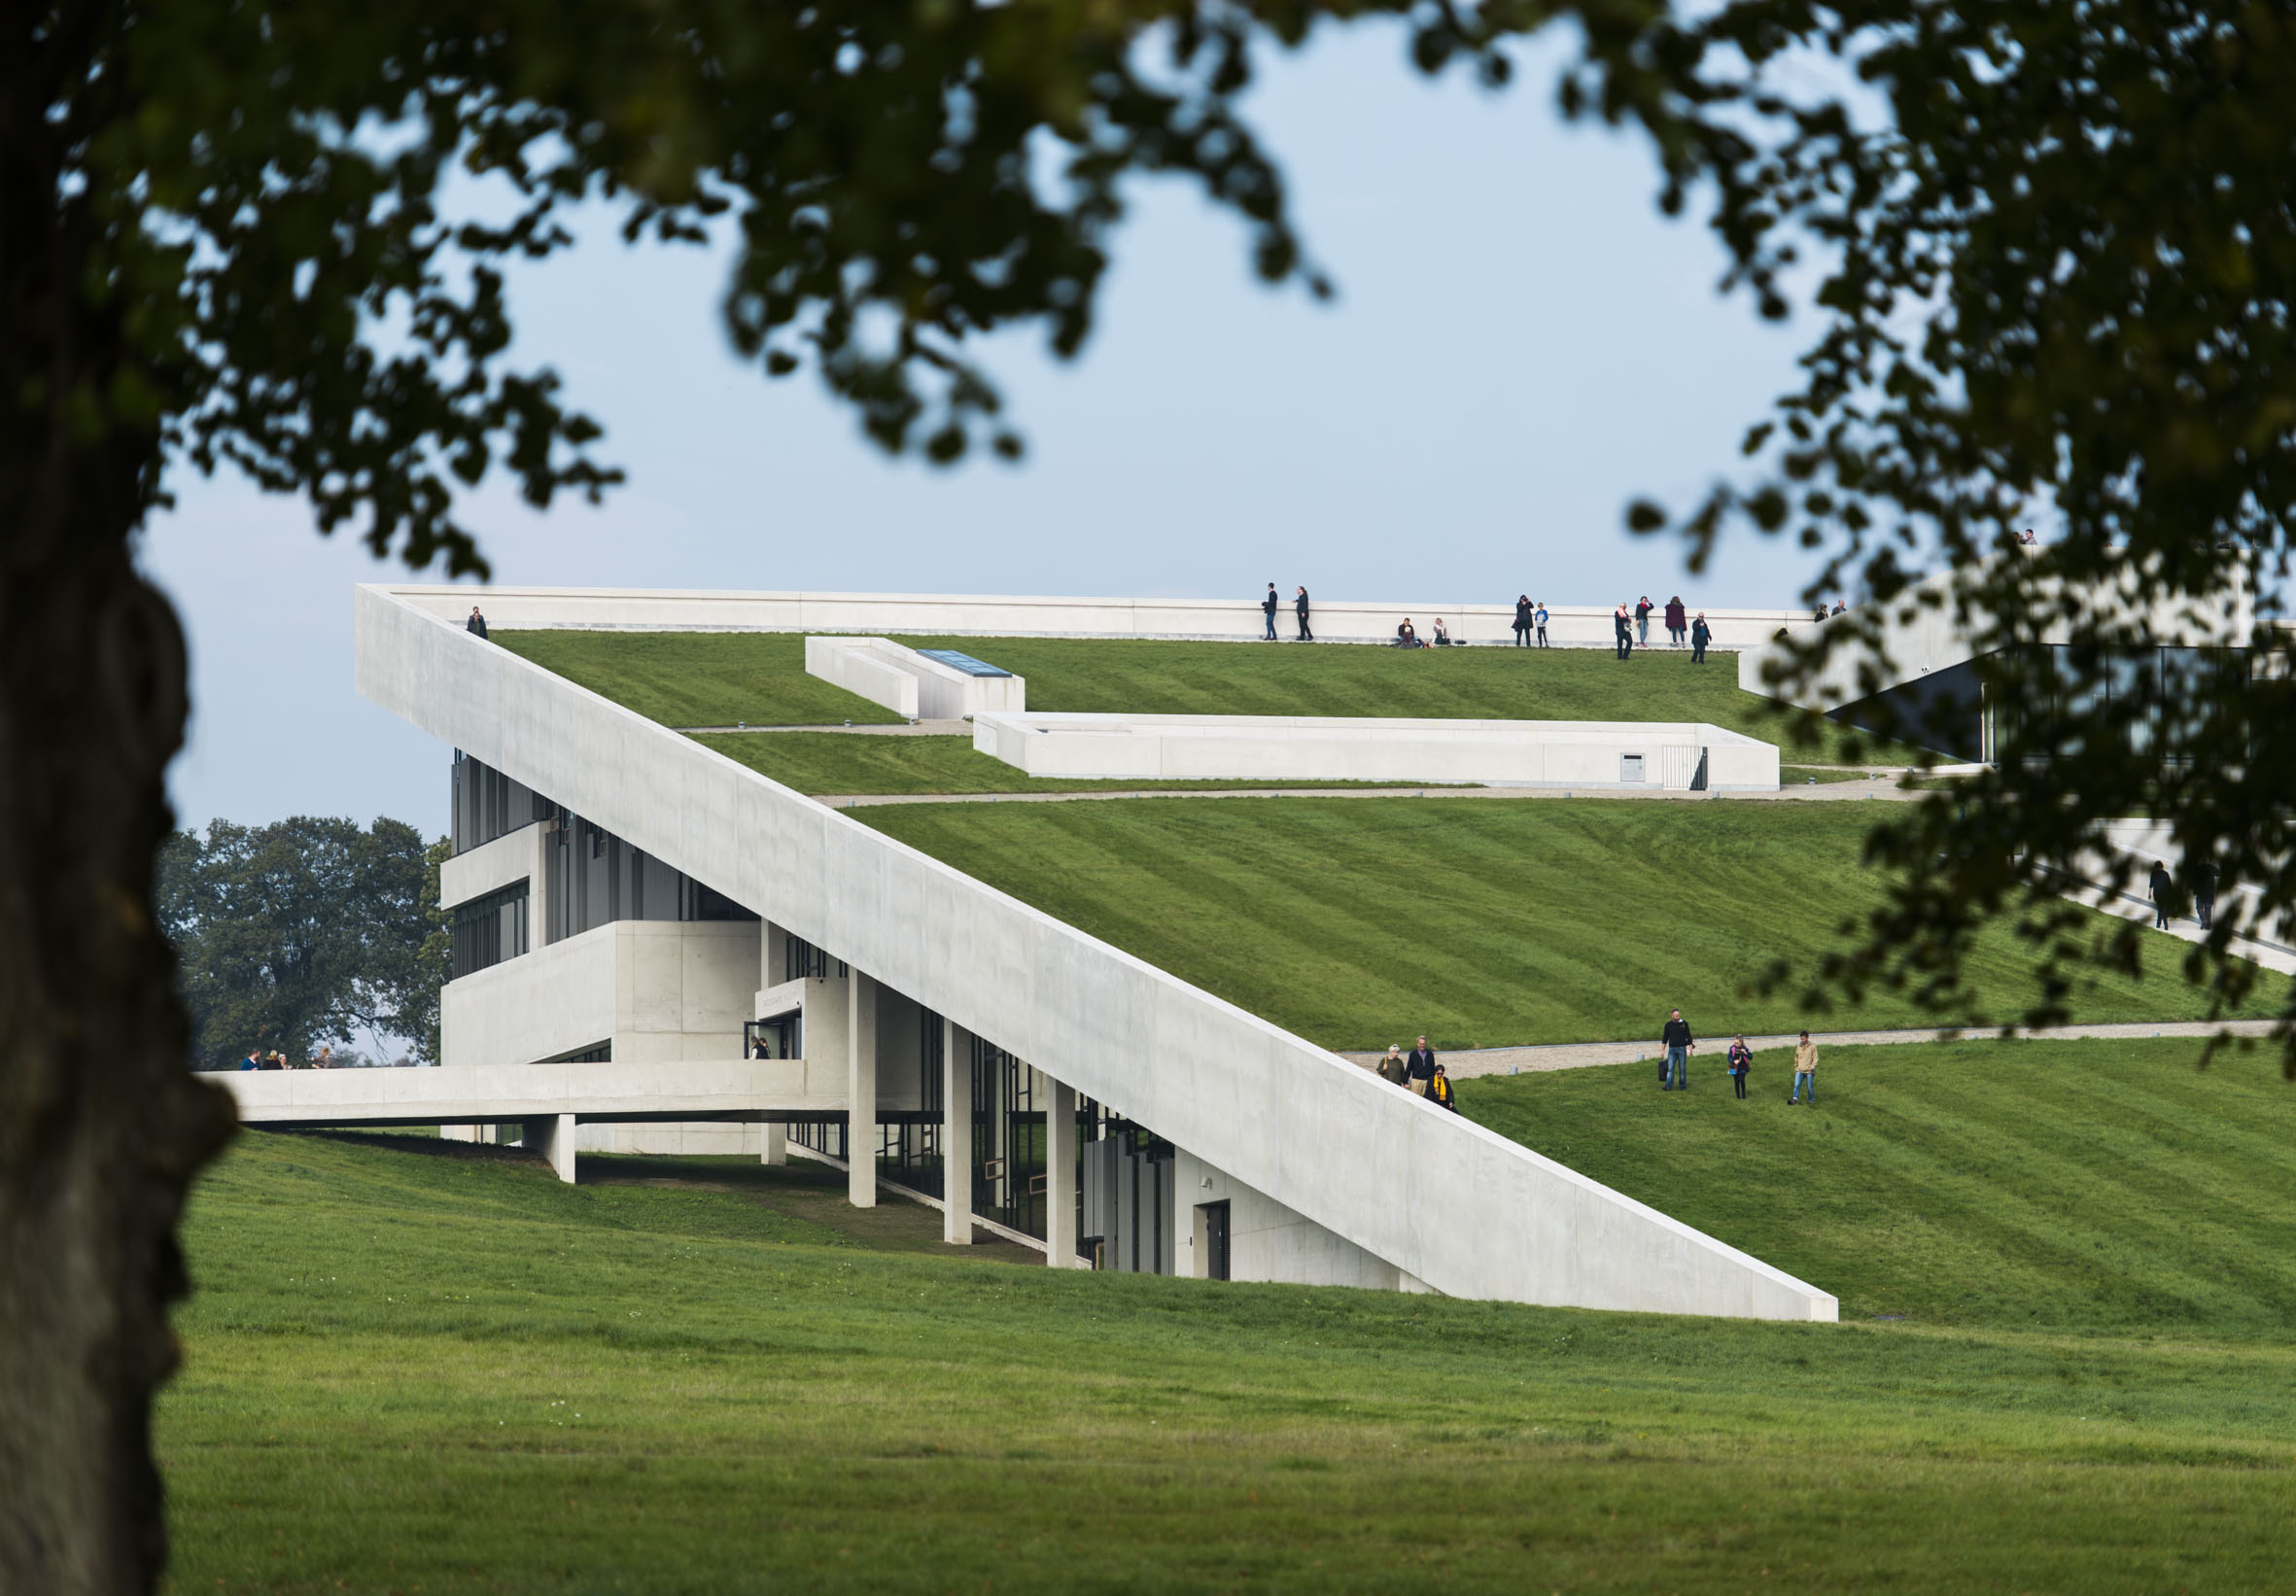 Photo of Moesgaard Museum by Henning Larsen Architects. Photo credit: Hufton Crow.